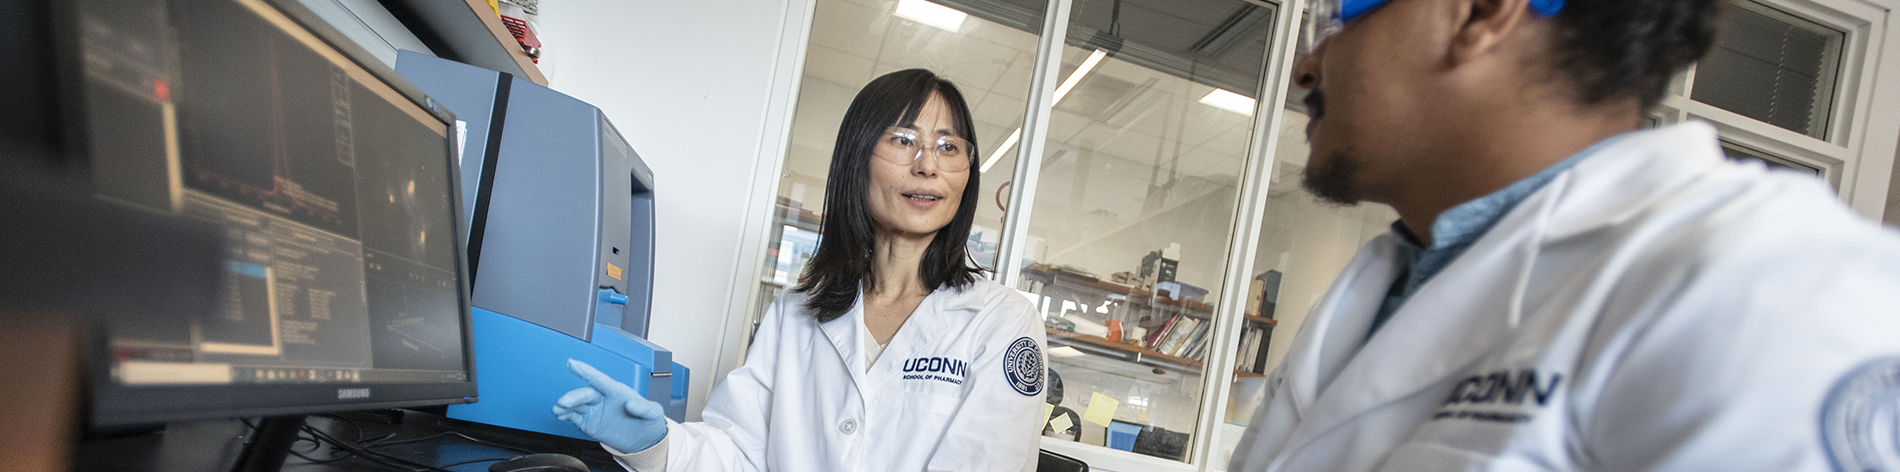 Female asian scientist in the lab